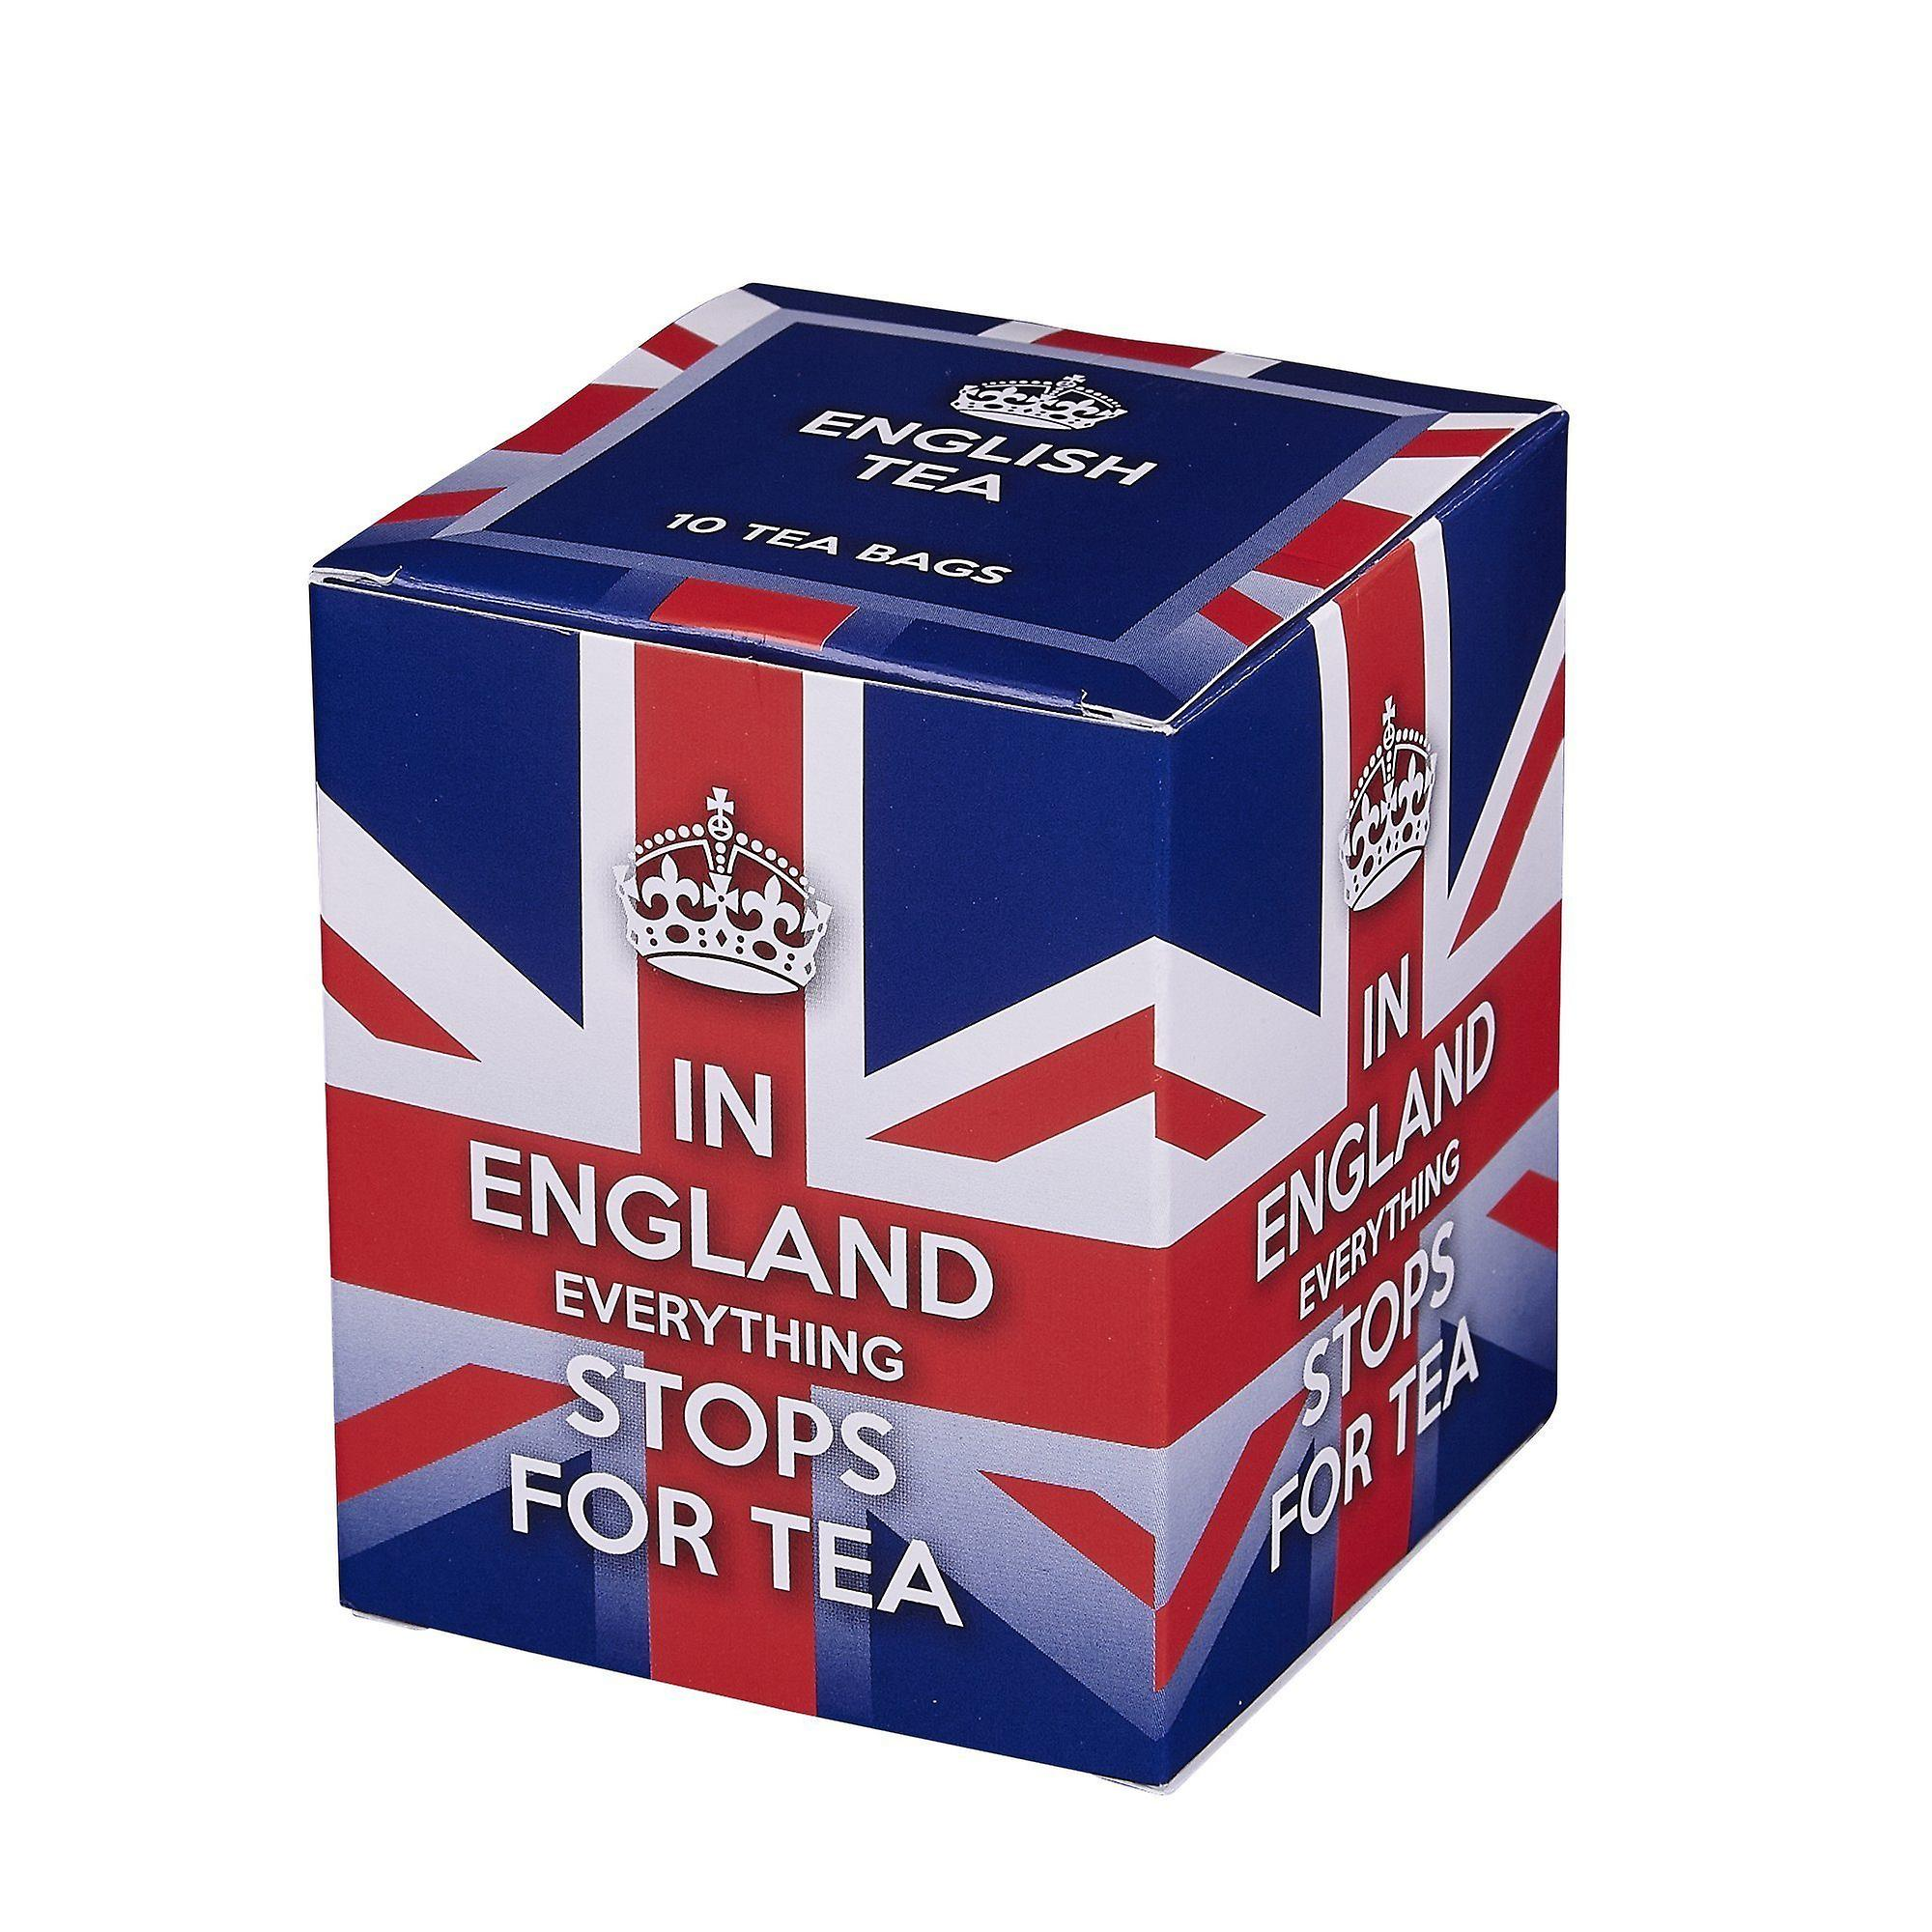 In england everything stops for tea 10 teabag carton